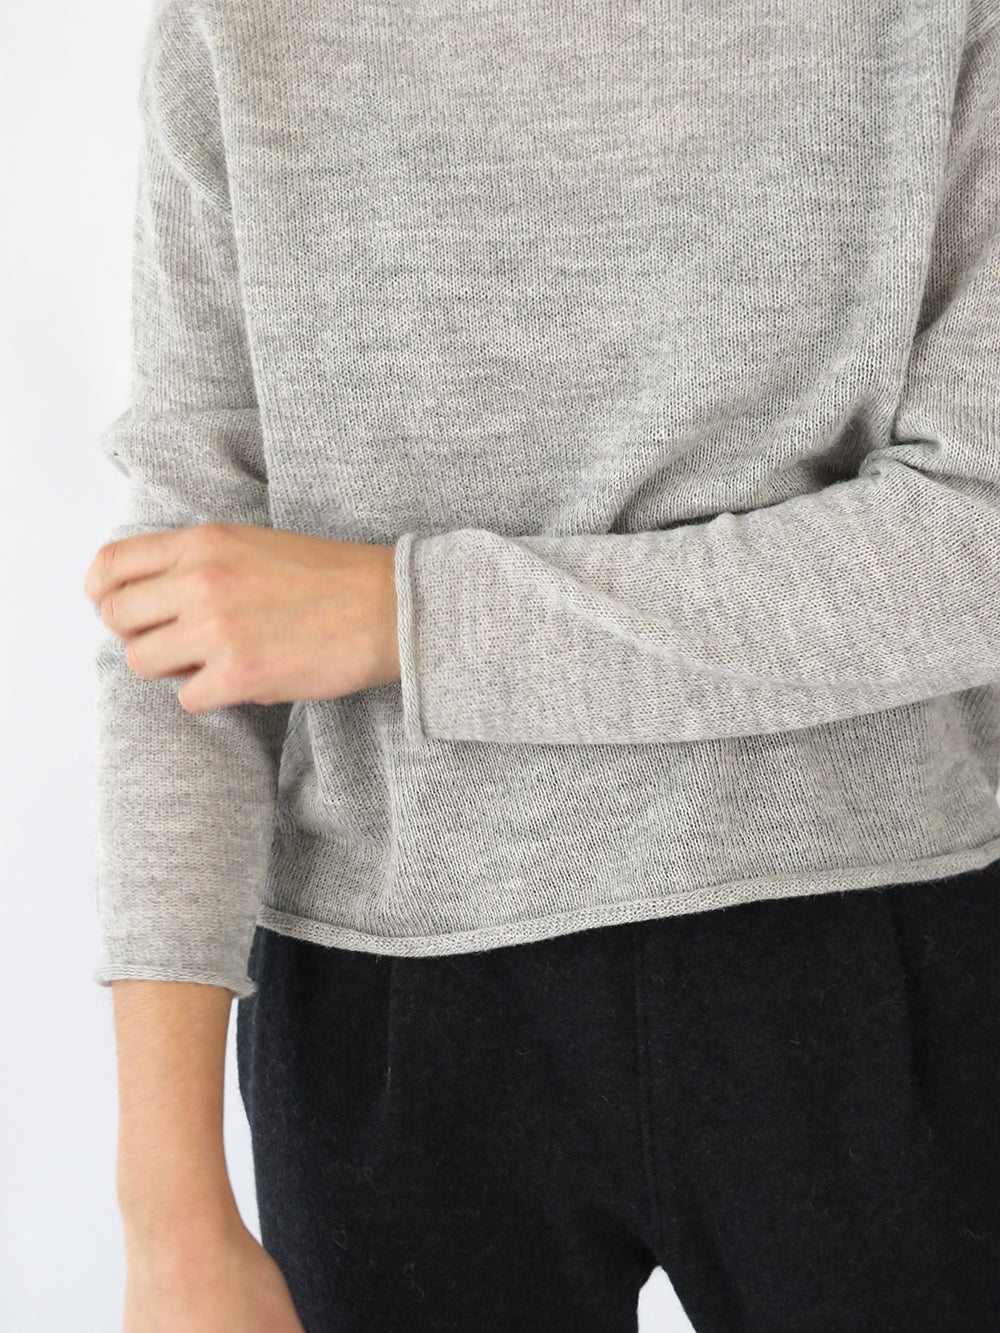 turtleneck sweater in light grey